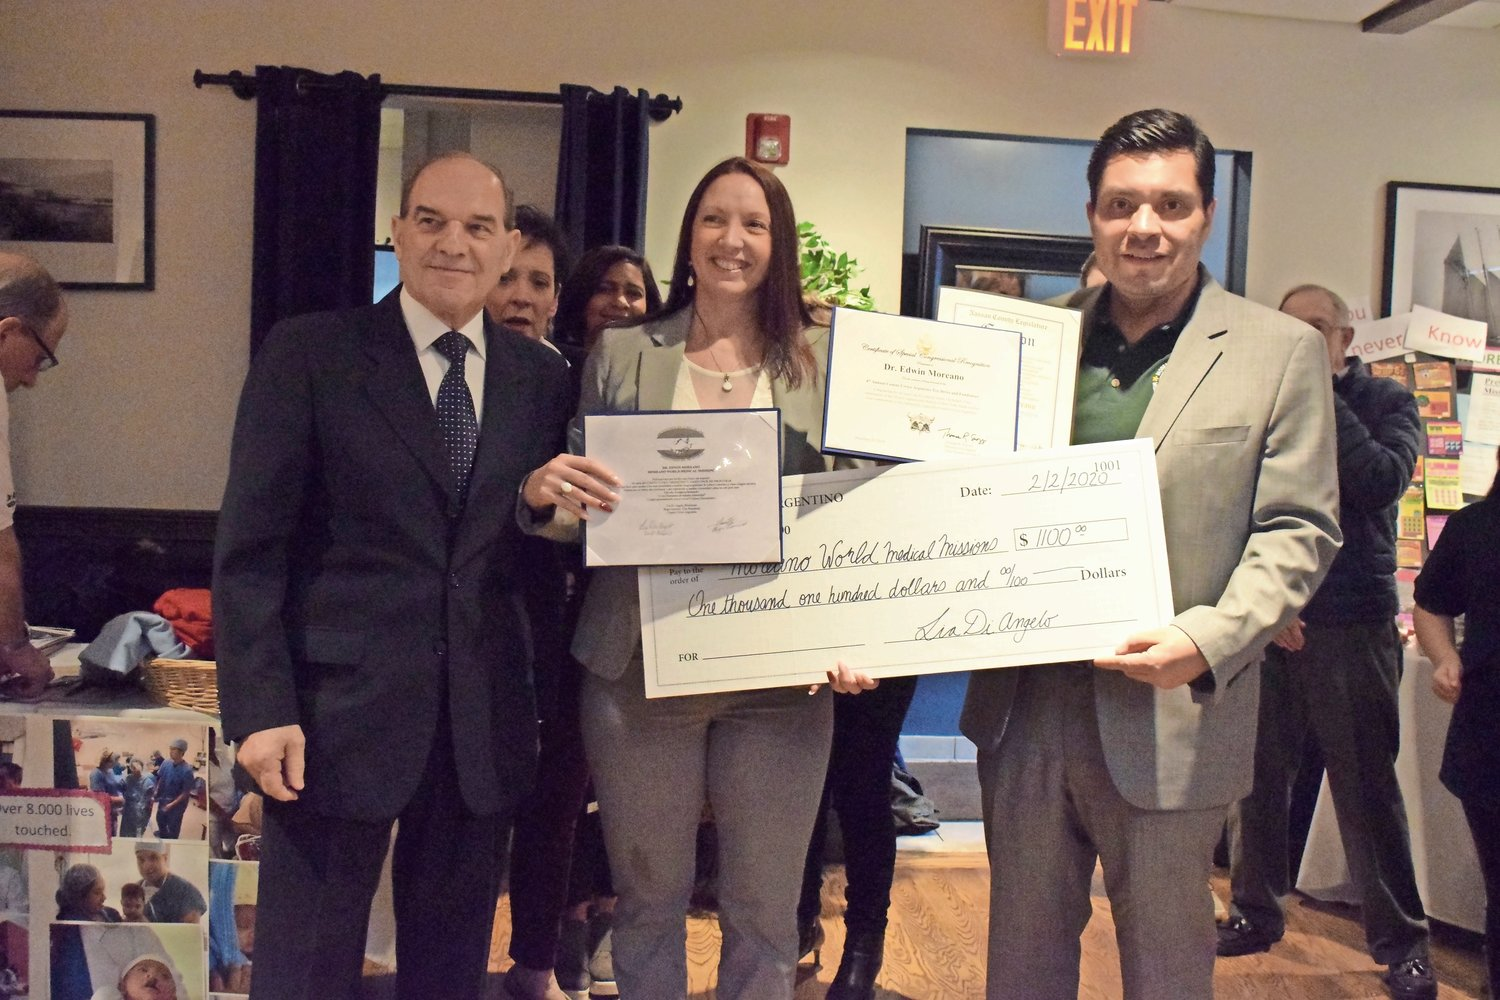 Comite Civico Argentino Vice President Hugo Amorini, far left, and President Lia Di Angelo presented a check to Dr. Edwin Moreano for his mission work in Latin America.